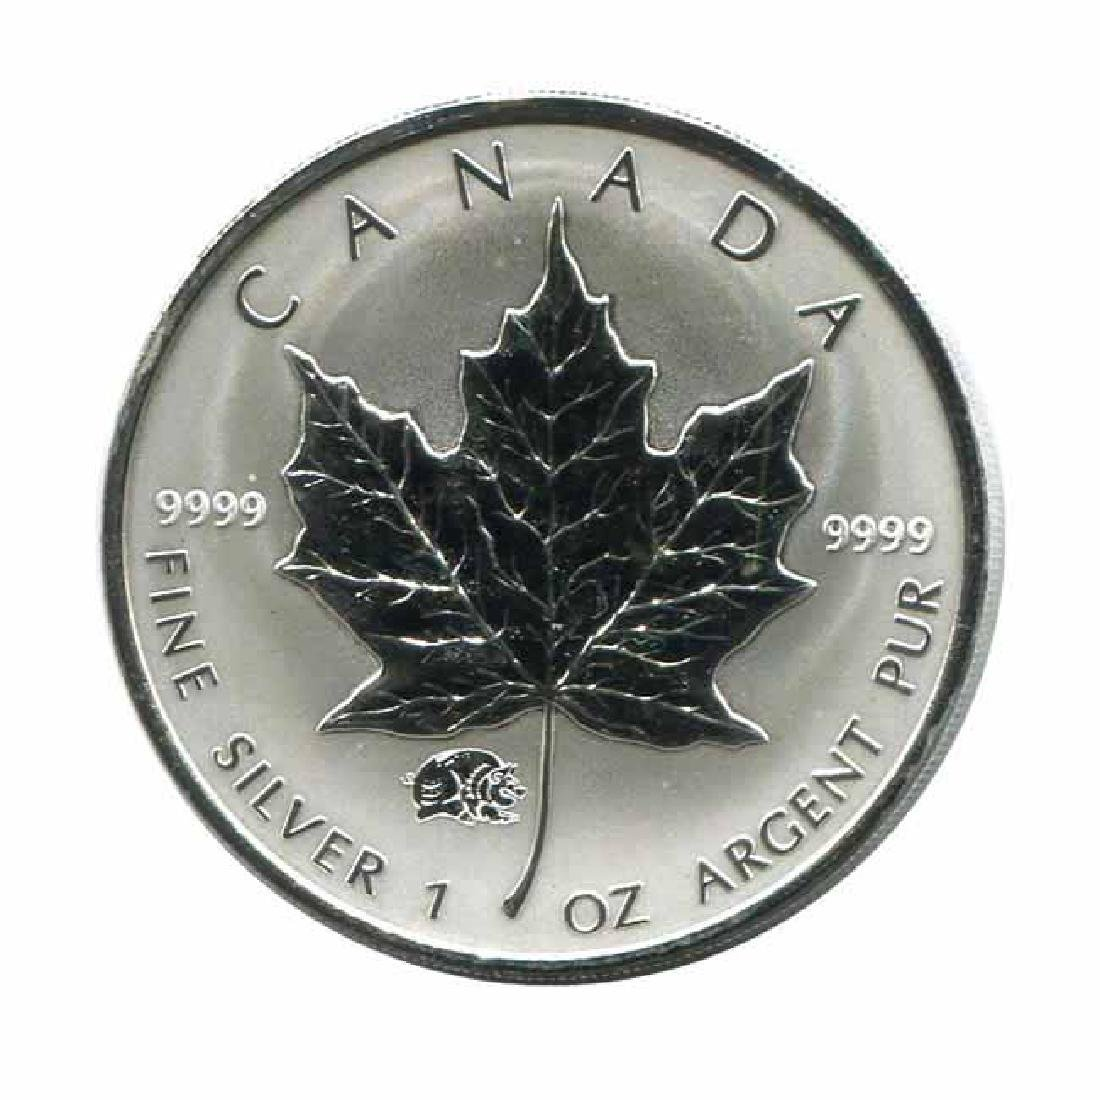 2007 Canada 1 oz. Silver Maple Leaf Reverse Proof Pig P